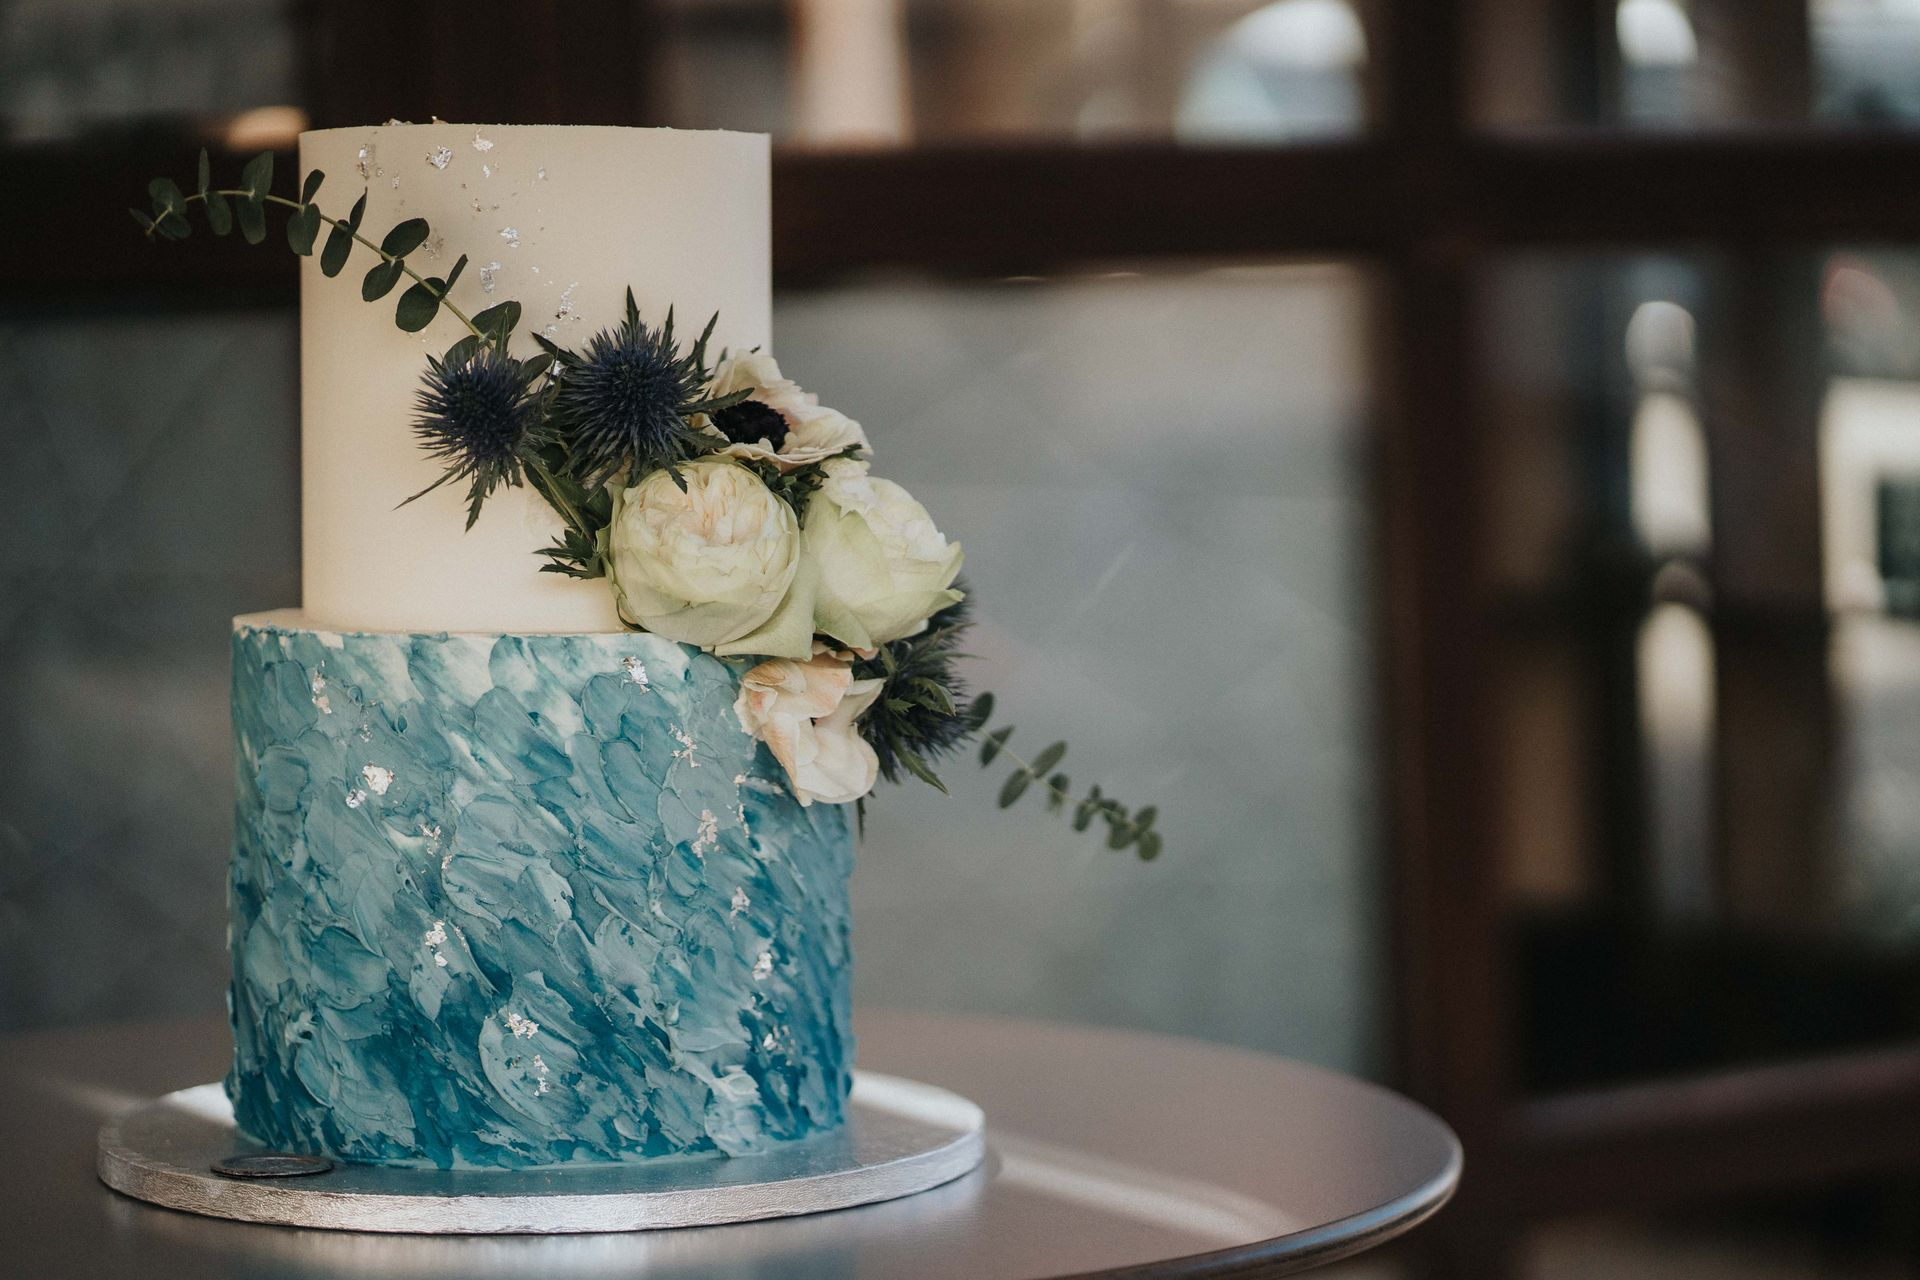 Germany Restaurant Elopement Venue Detail Image | The bride and groom choose a simple yet elegant wedding cake